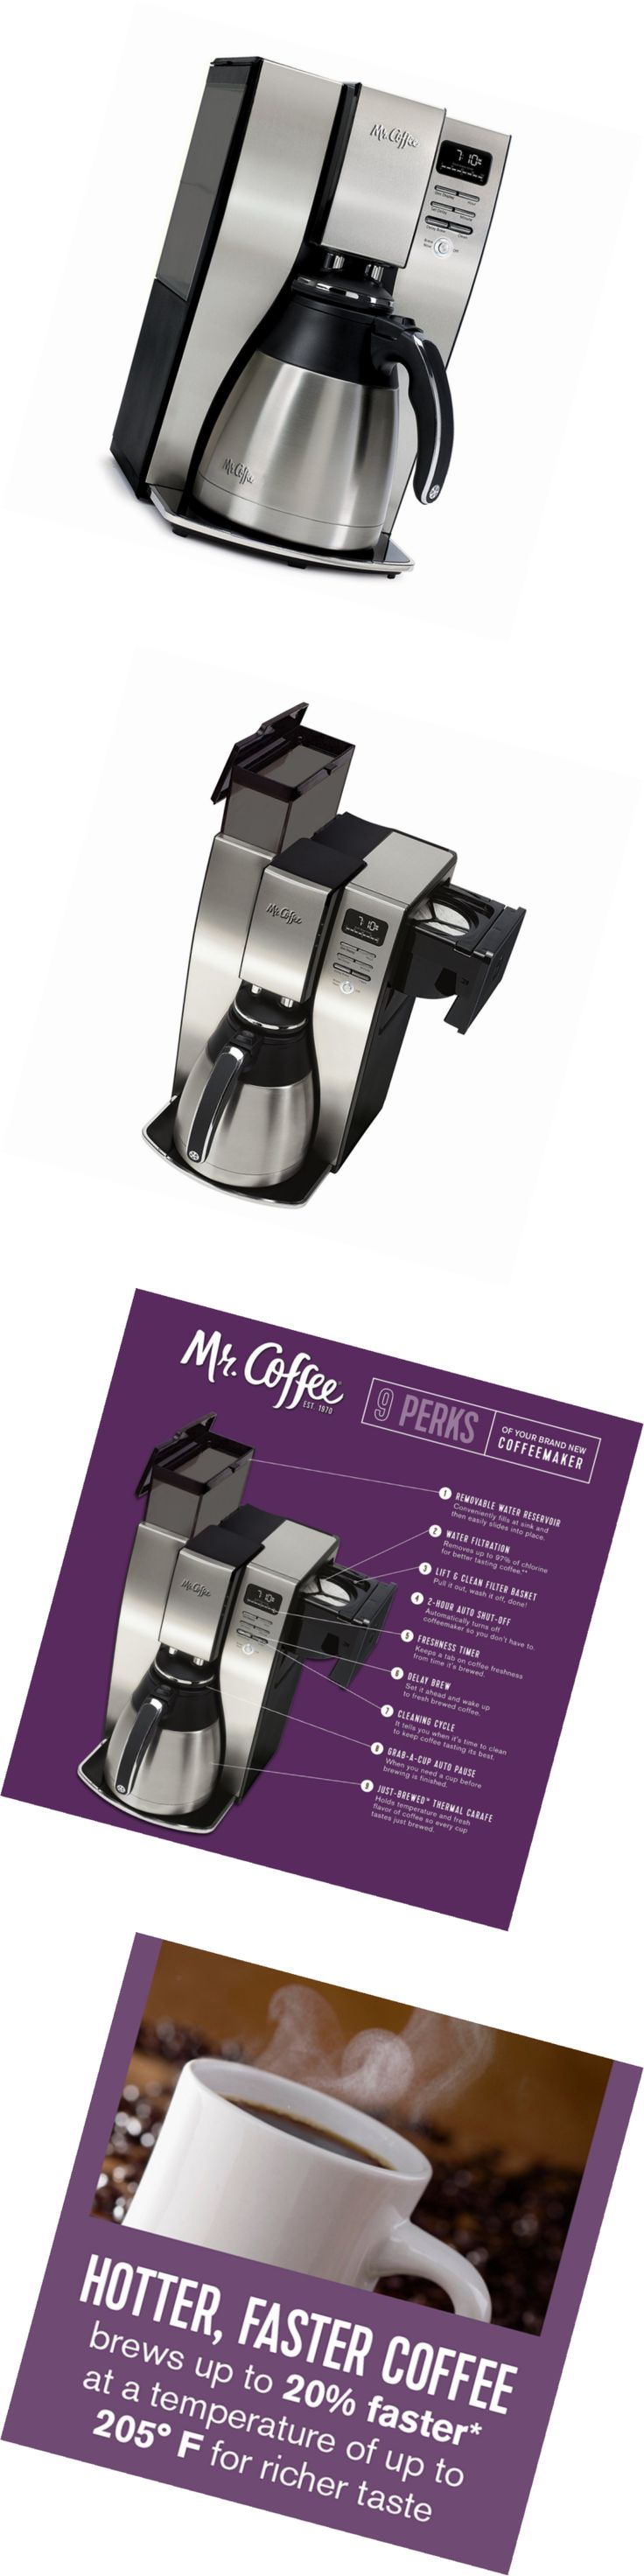 Coffee Makers Automatic 65635: Mr. Coffee 10 Cup Optimal Brew Thermal Coffee Maker, Stainless Steel, Pstx95 -> BUY IT NOW ONLY: $95.71 on eBay!